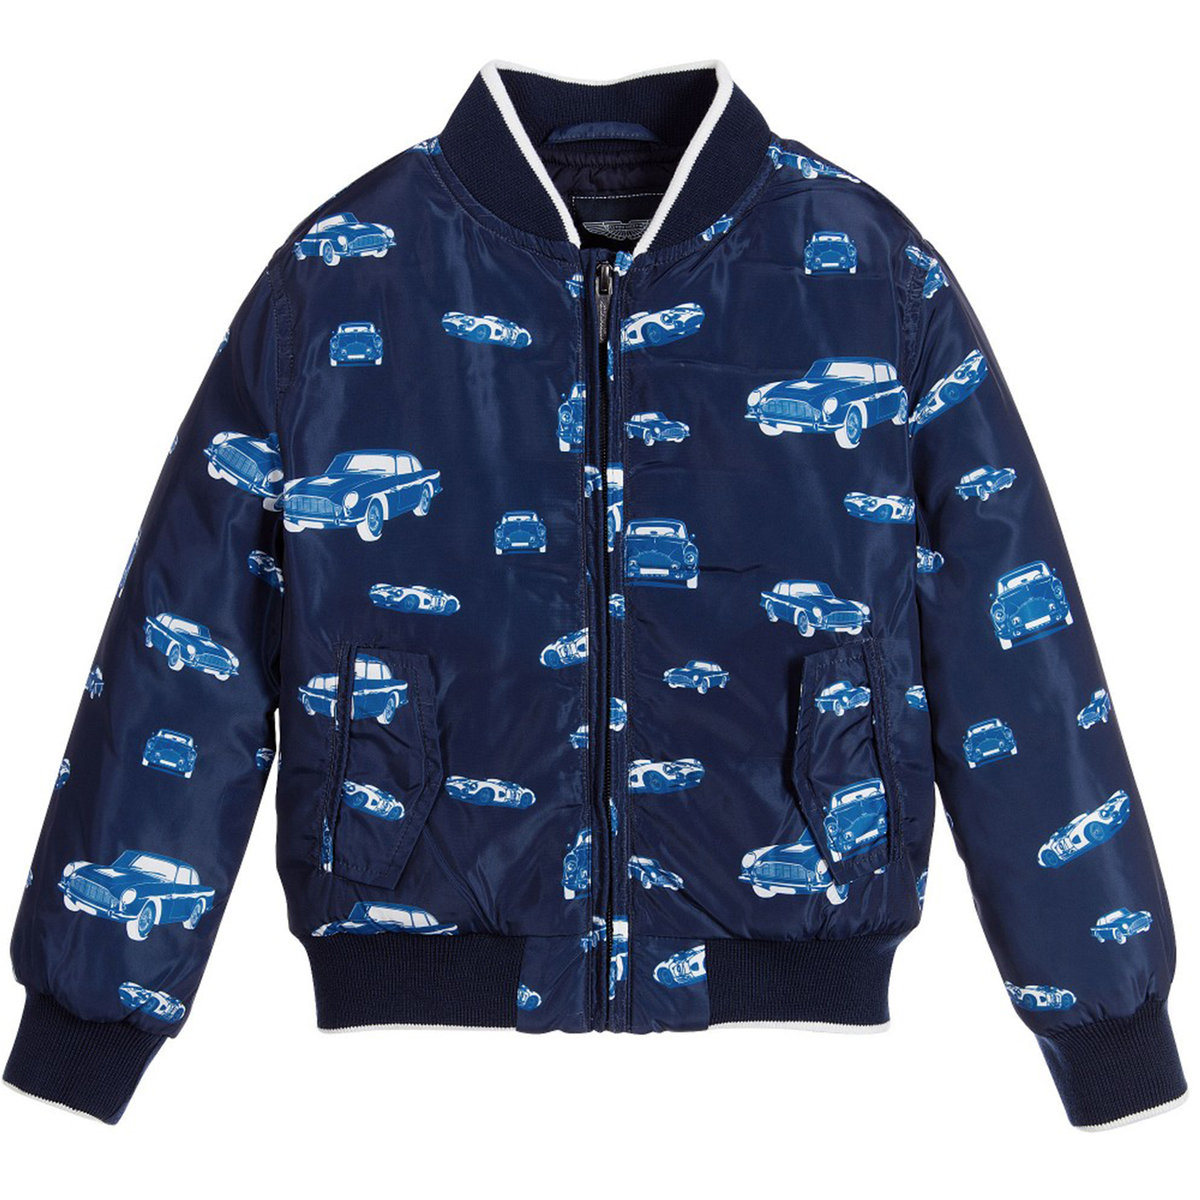 Toddler Boy Down Printed Jacket Aston Martin Jackets Coats